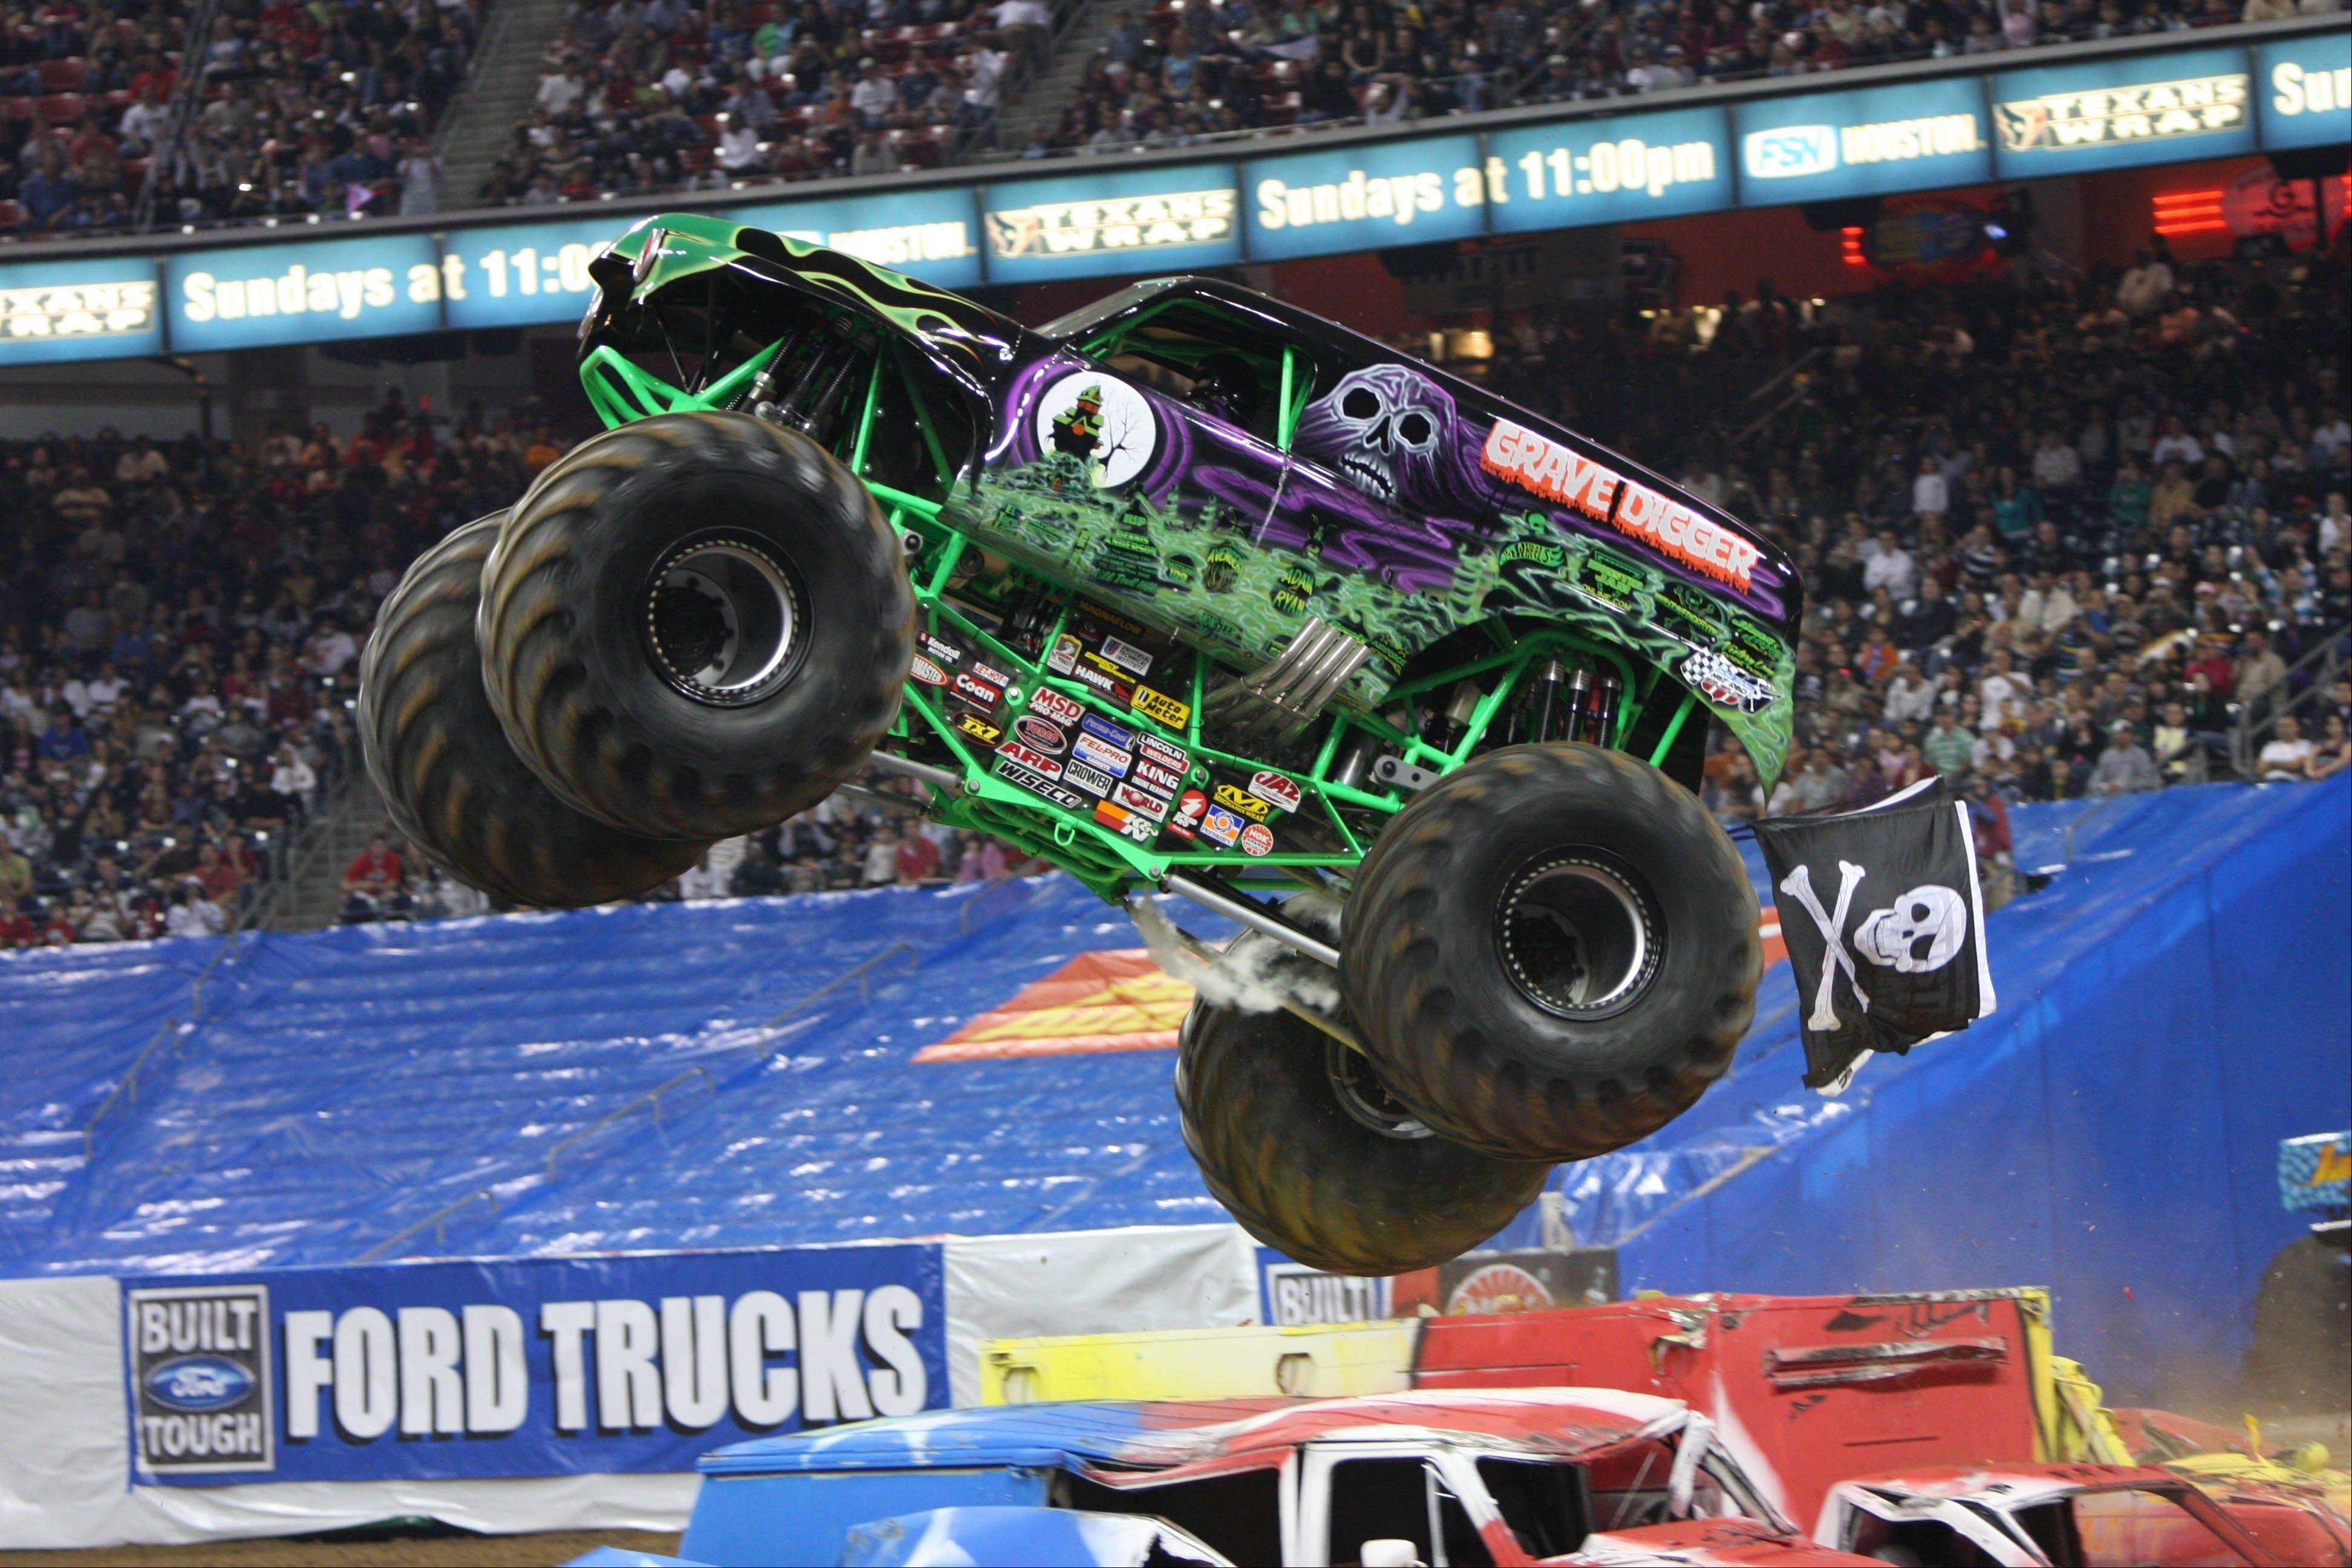 The Grave Digger jumps into action as part of